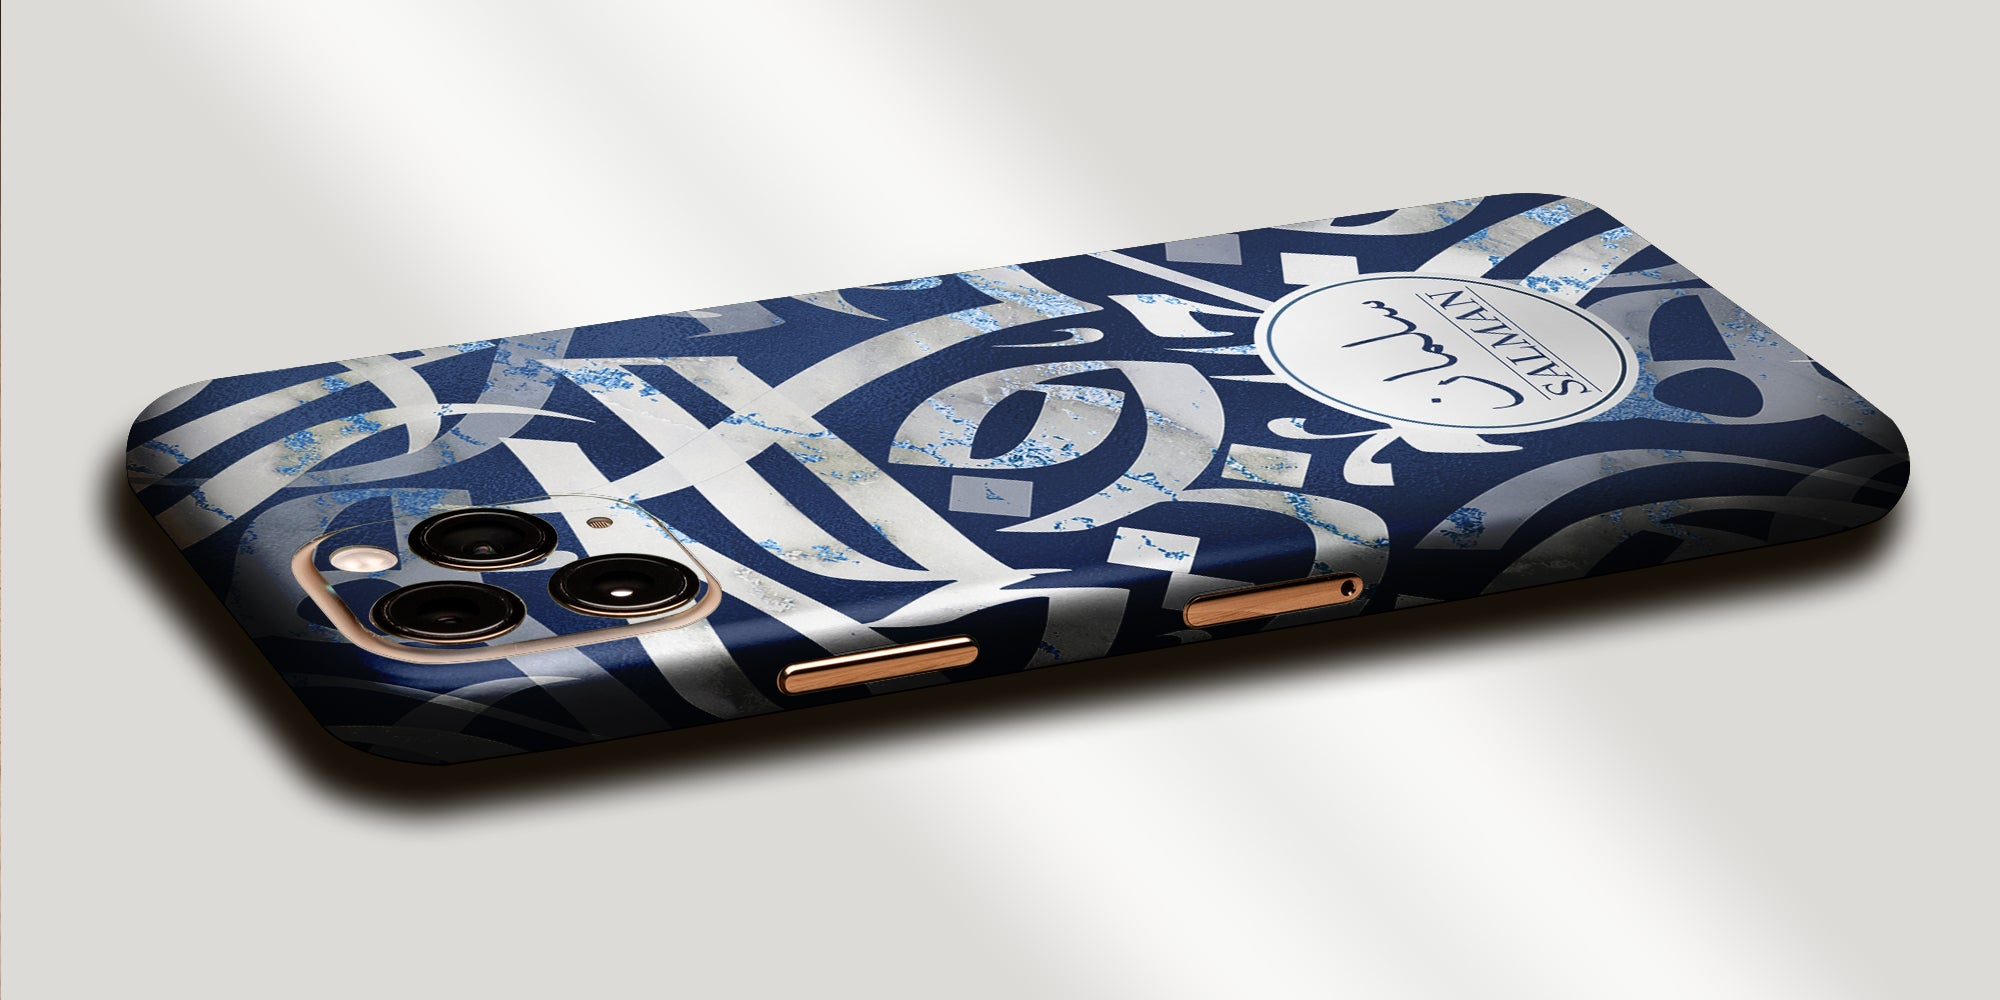 Arabic Calligraphy by Asad Decal Skin With Personalised Arabic Name Phone Wrap  - Blue